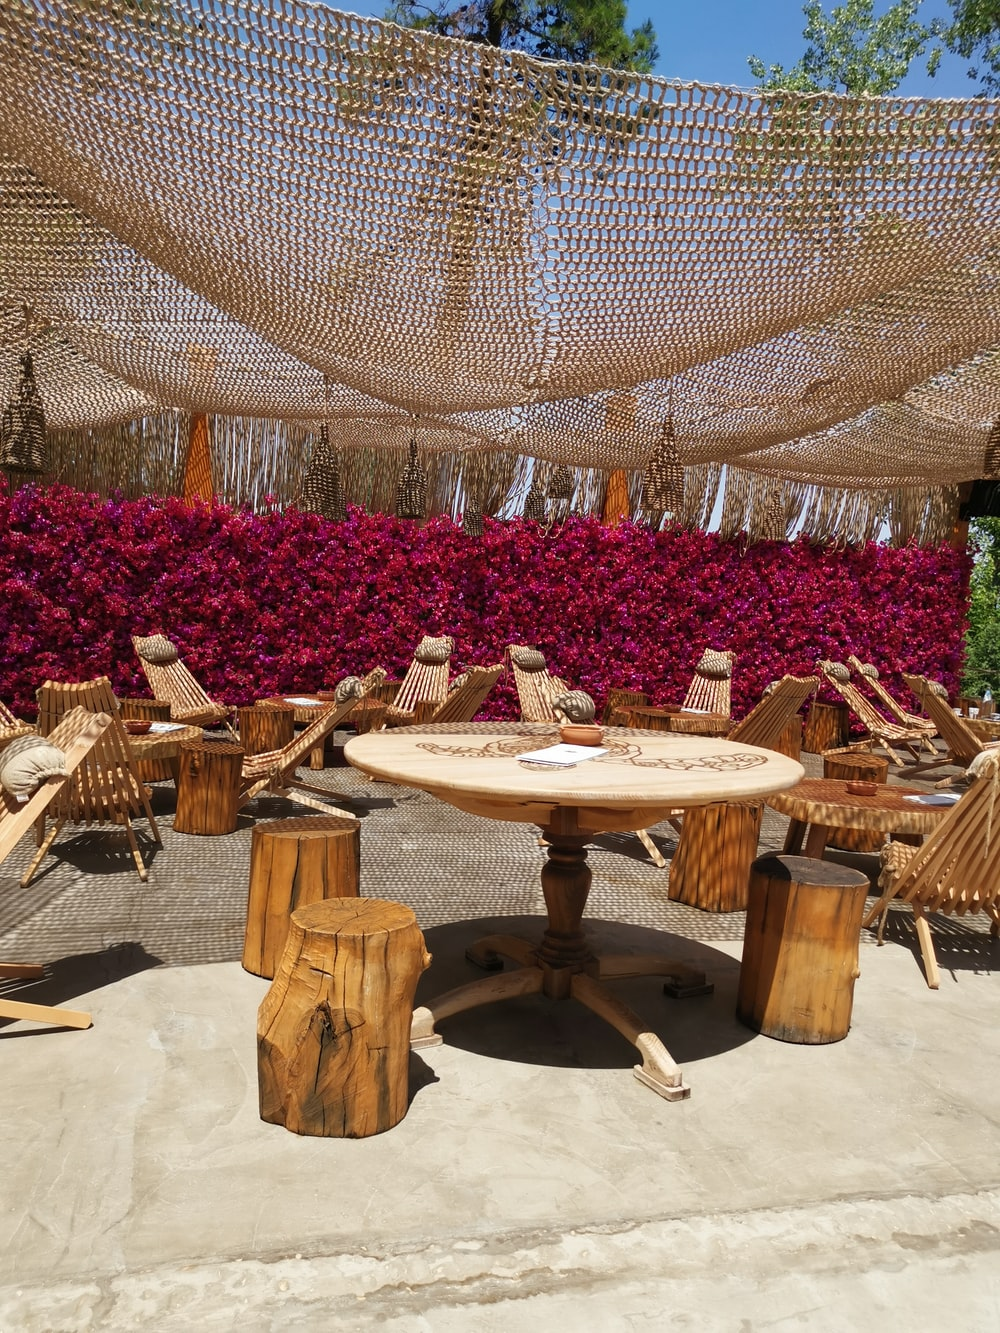 Surprising Table With Chairs 7 Seas Restaurant Hd Photo By Filiz Download Free Architecture Designs Aeocymadebymaigaardcom